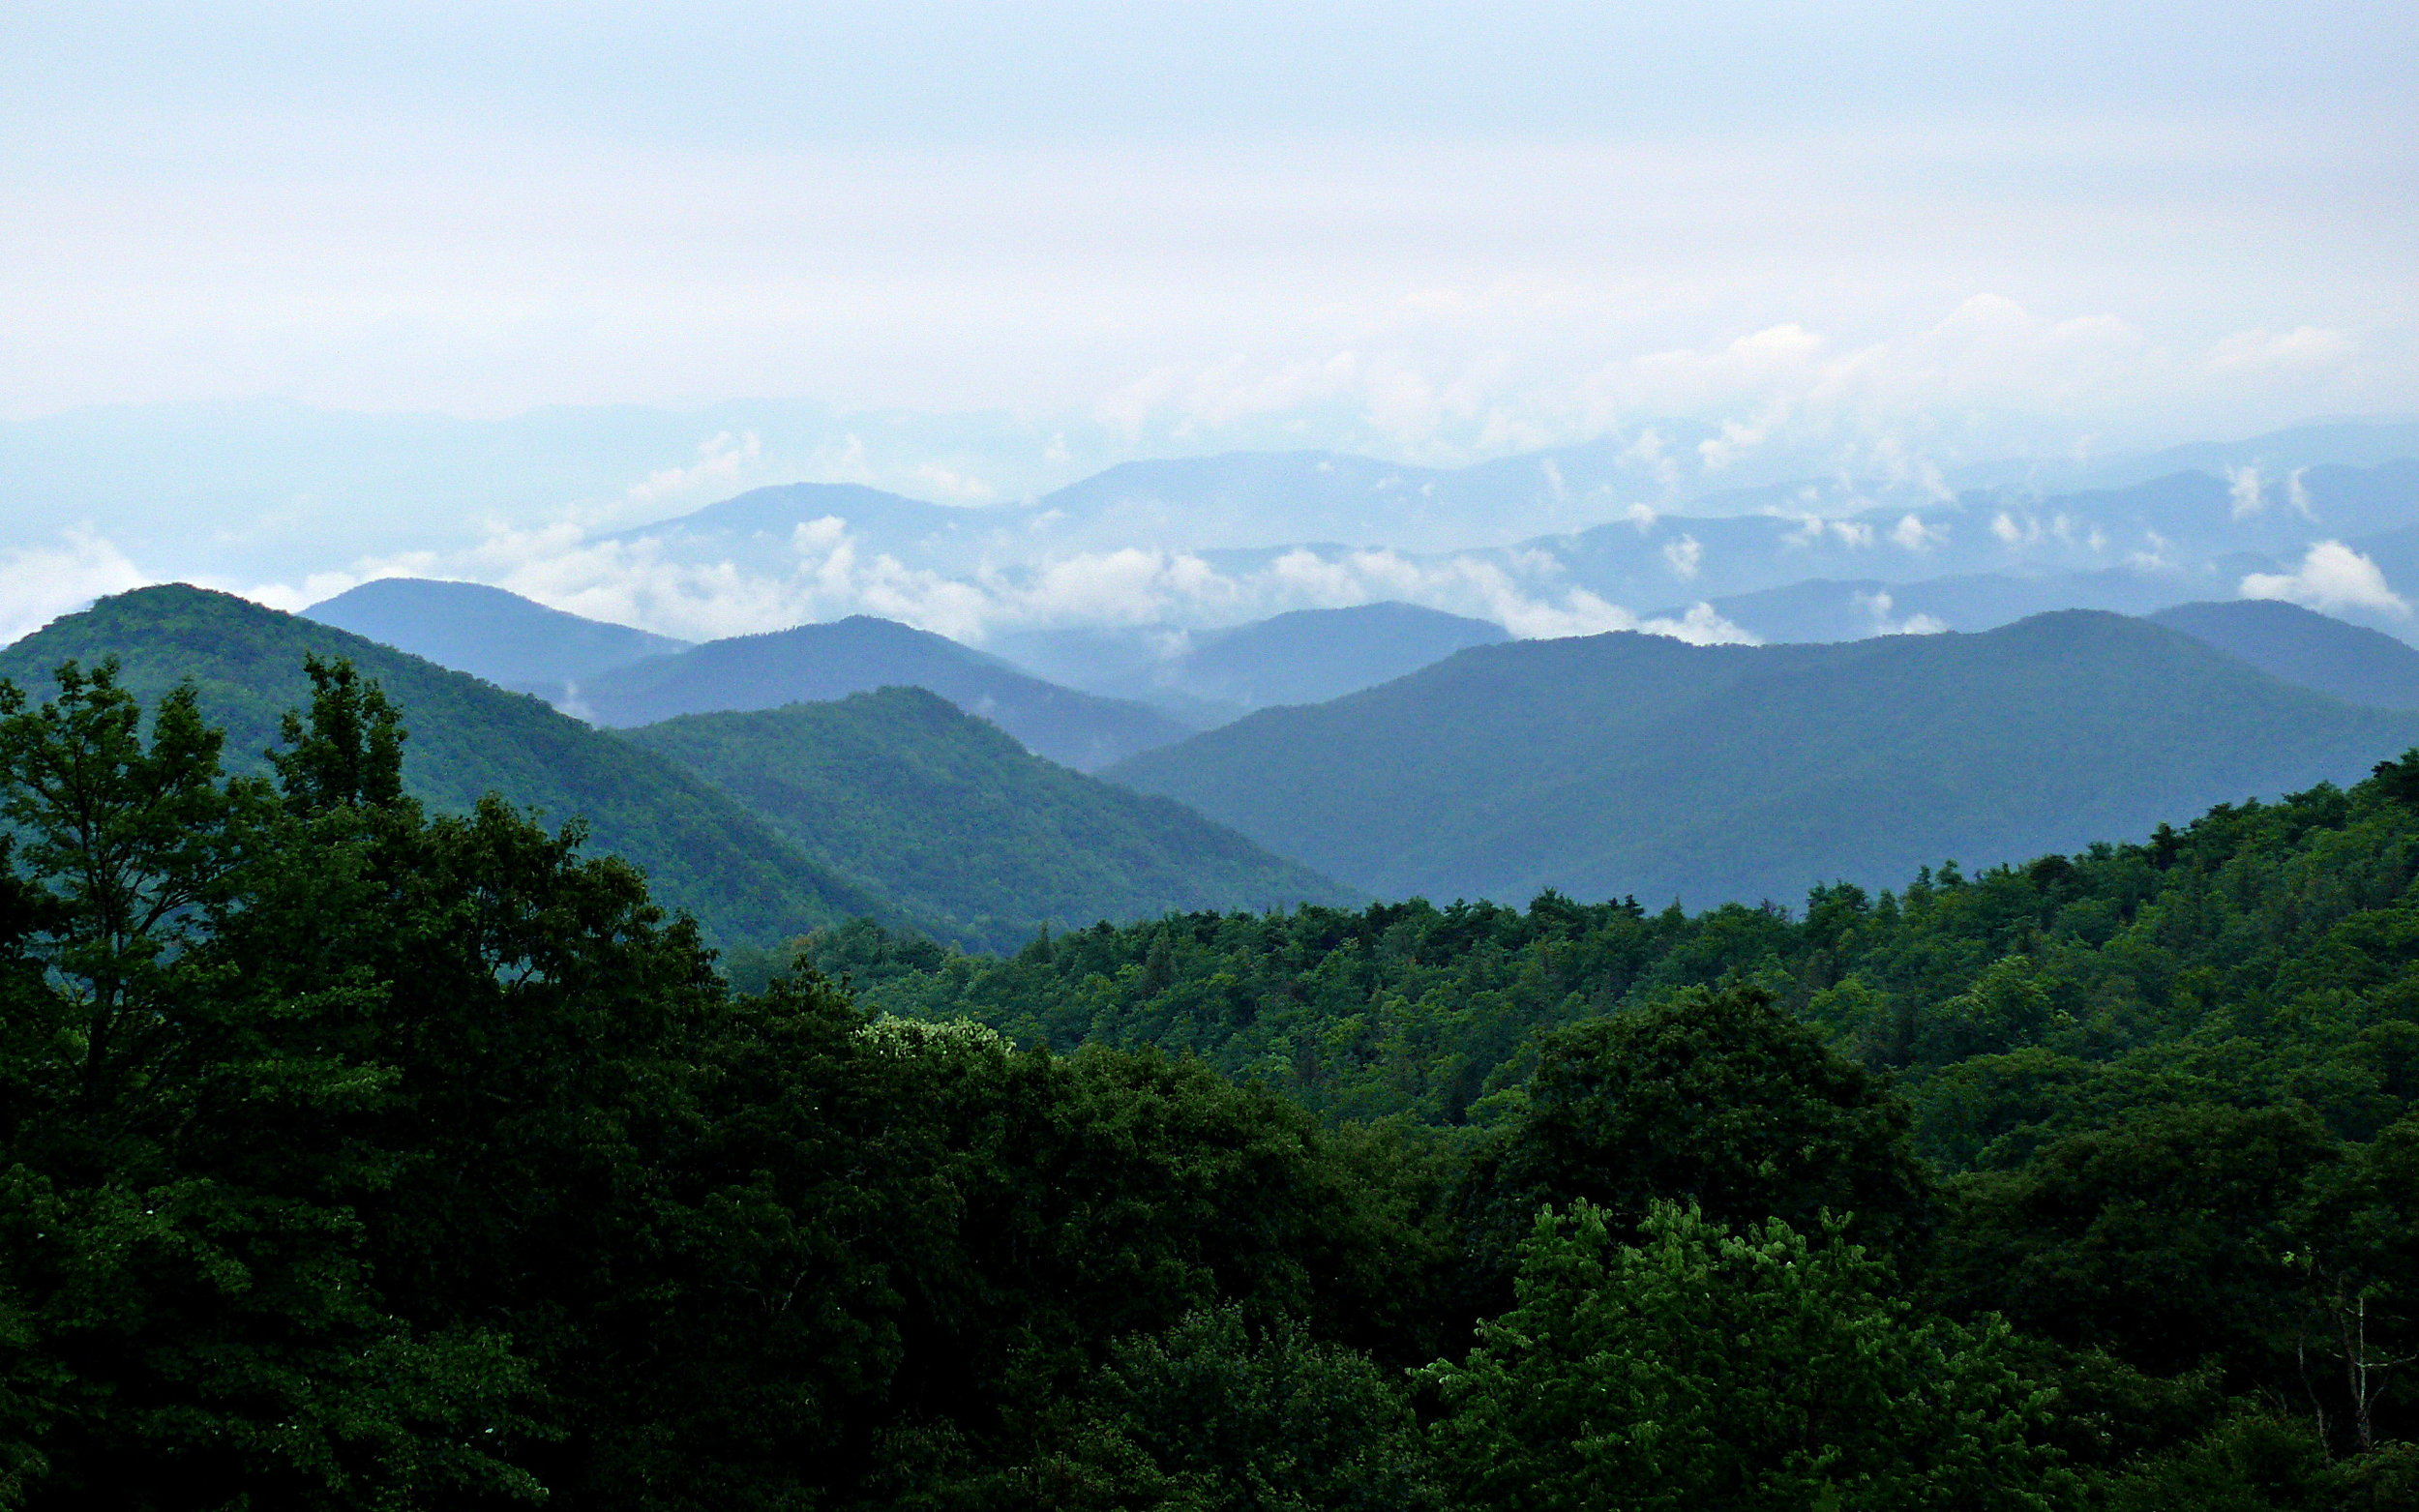 Rainy_Blue_Ridge-27527.jpg